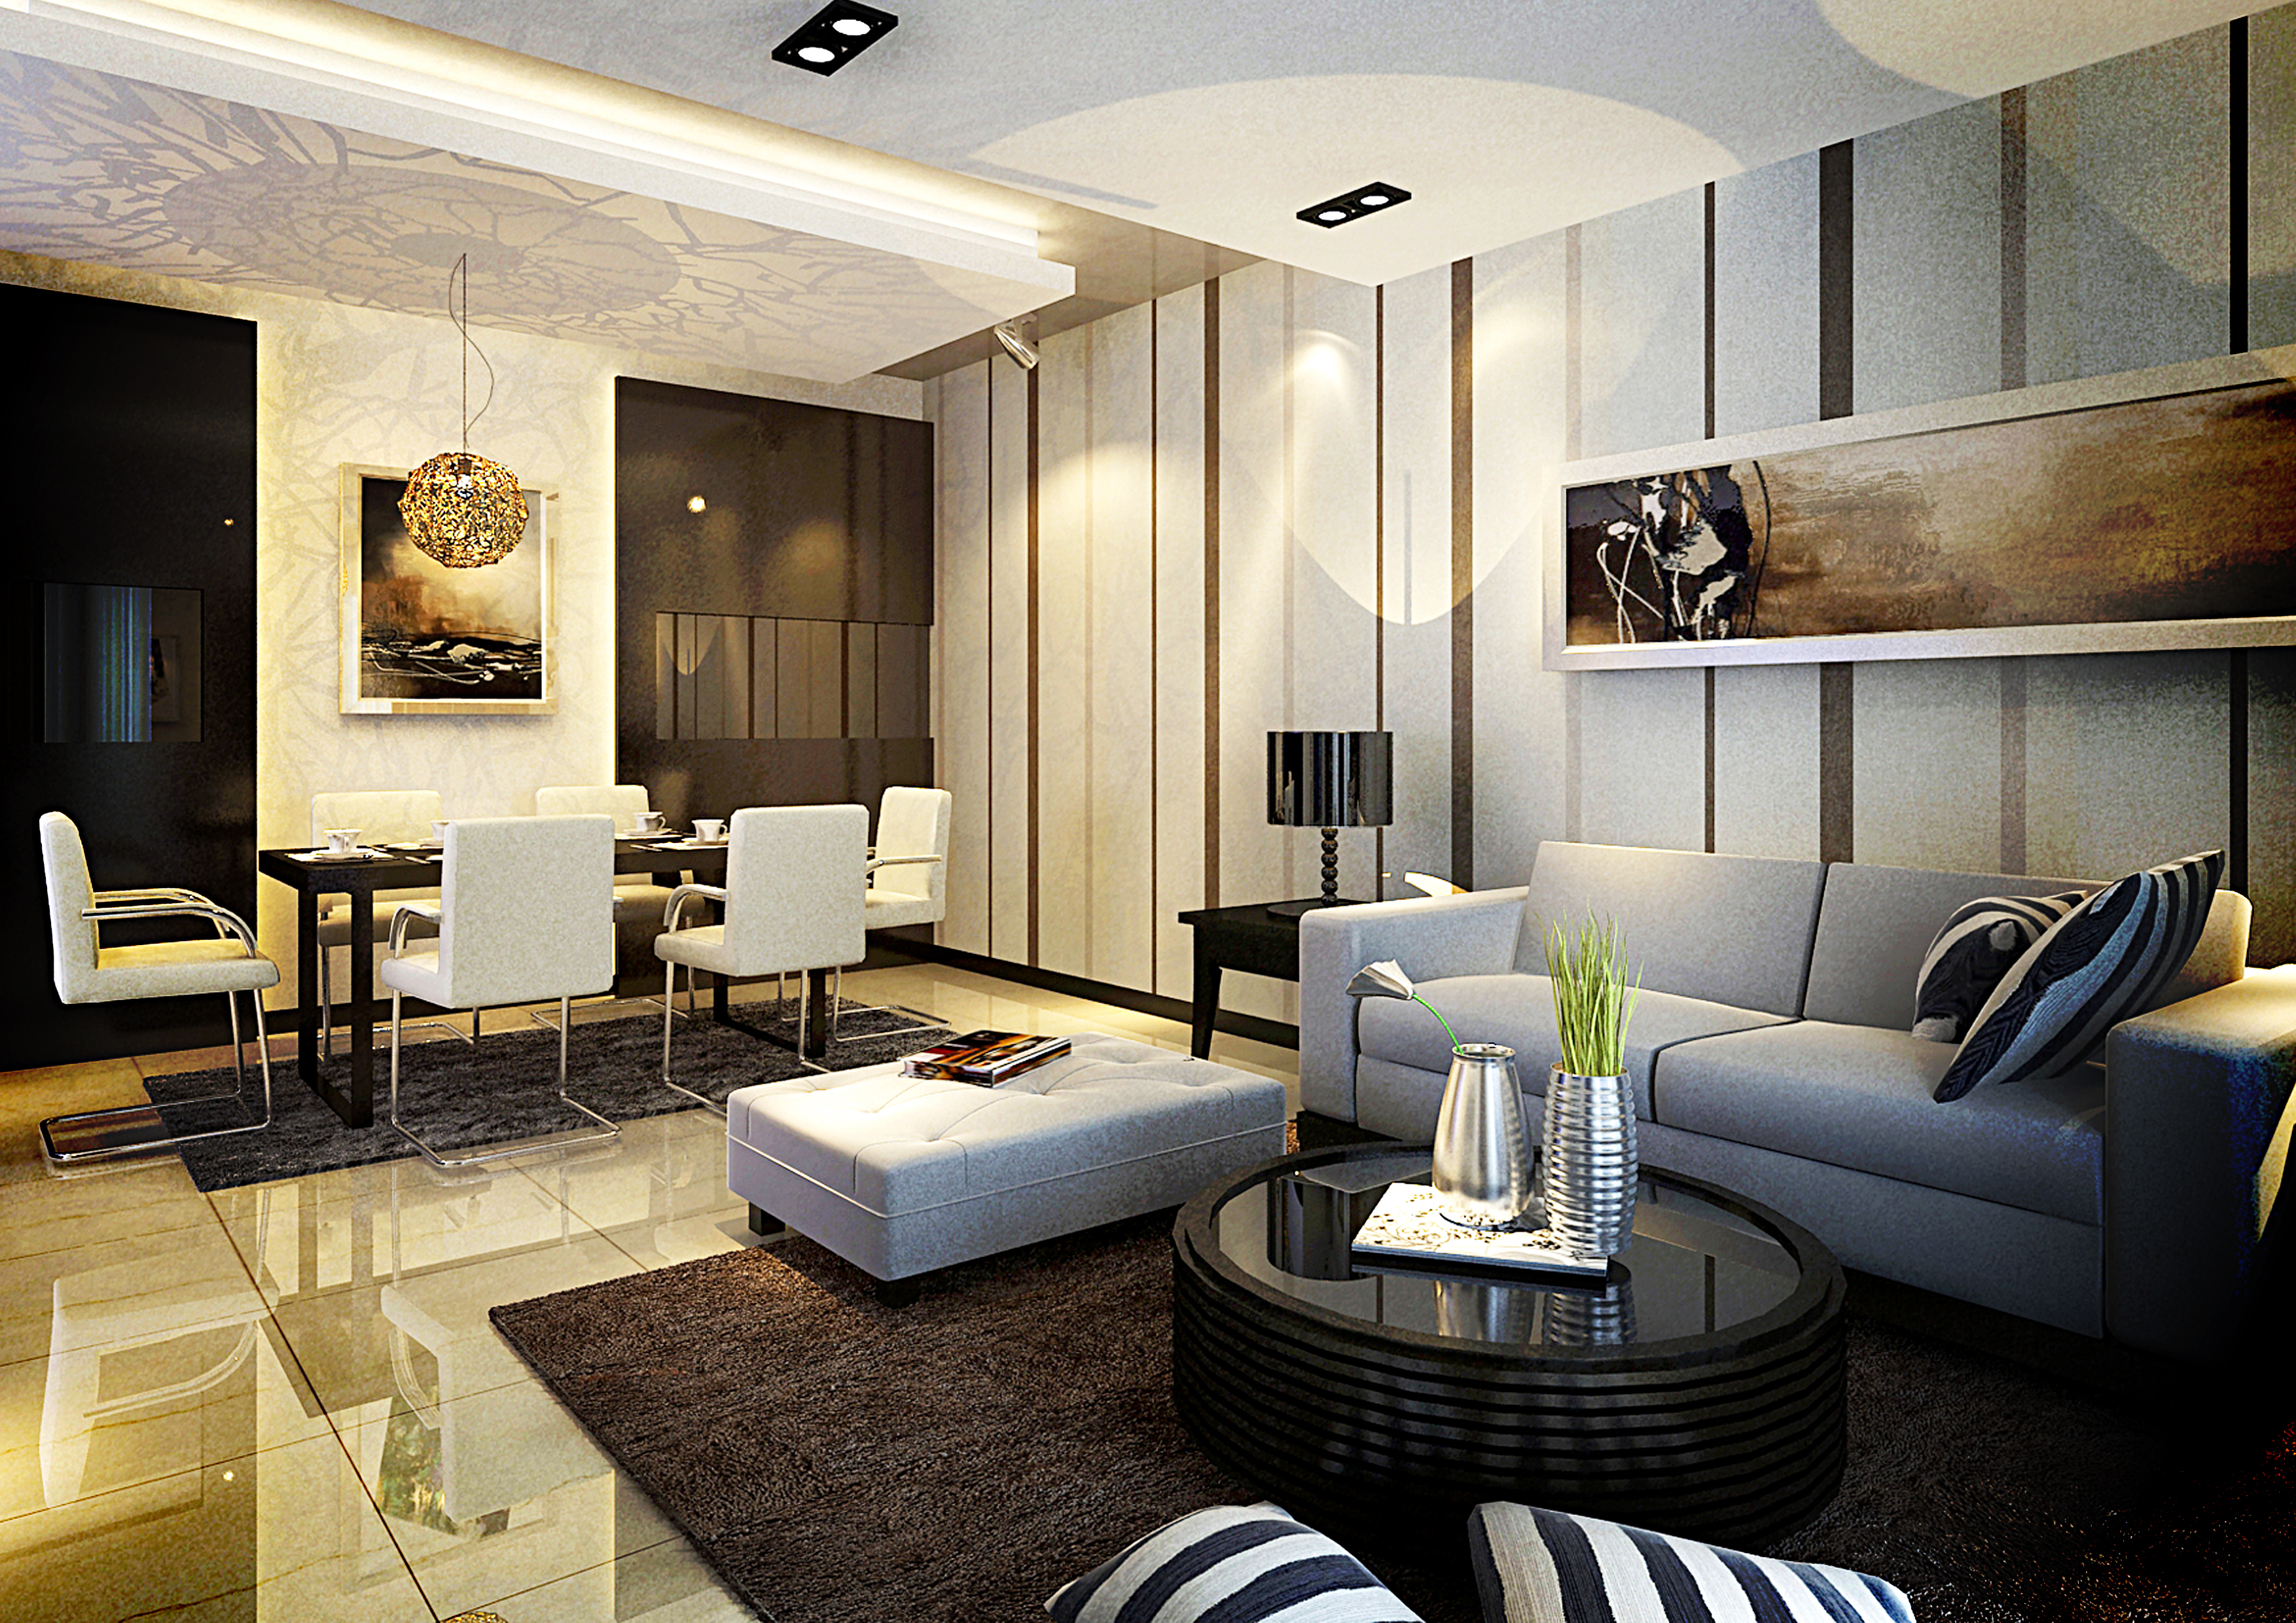 50 Best Interior Design For Your Home - The WoW Style on House Interior Ideas  id=98009